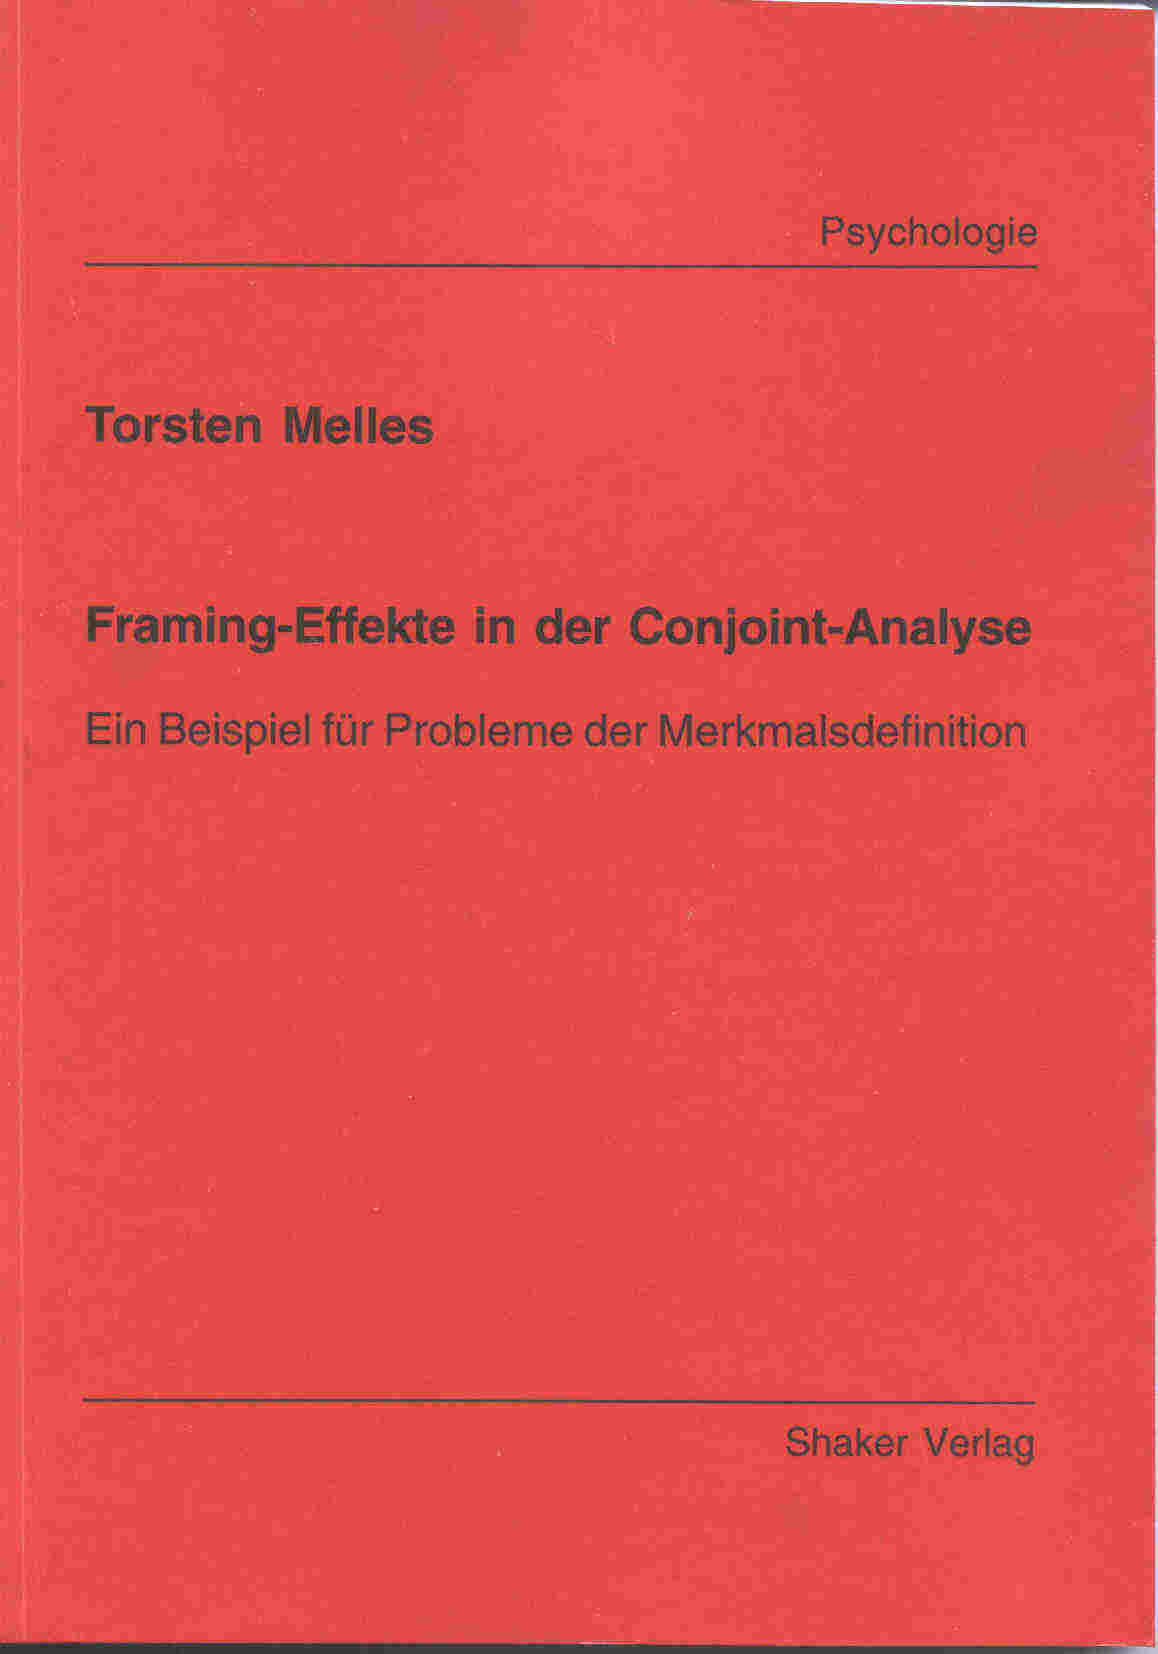 Framing-Effekte in der Conjoint-Analyse